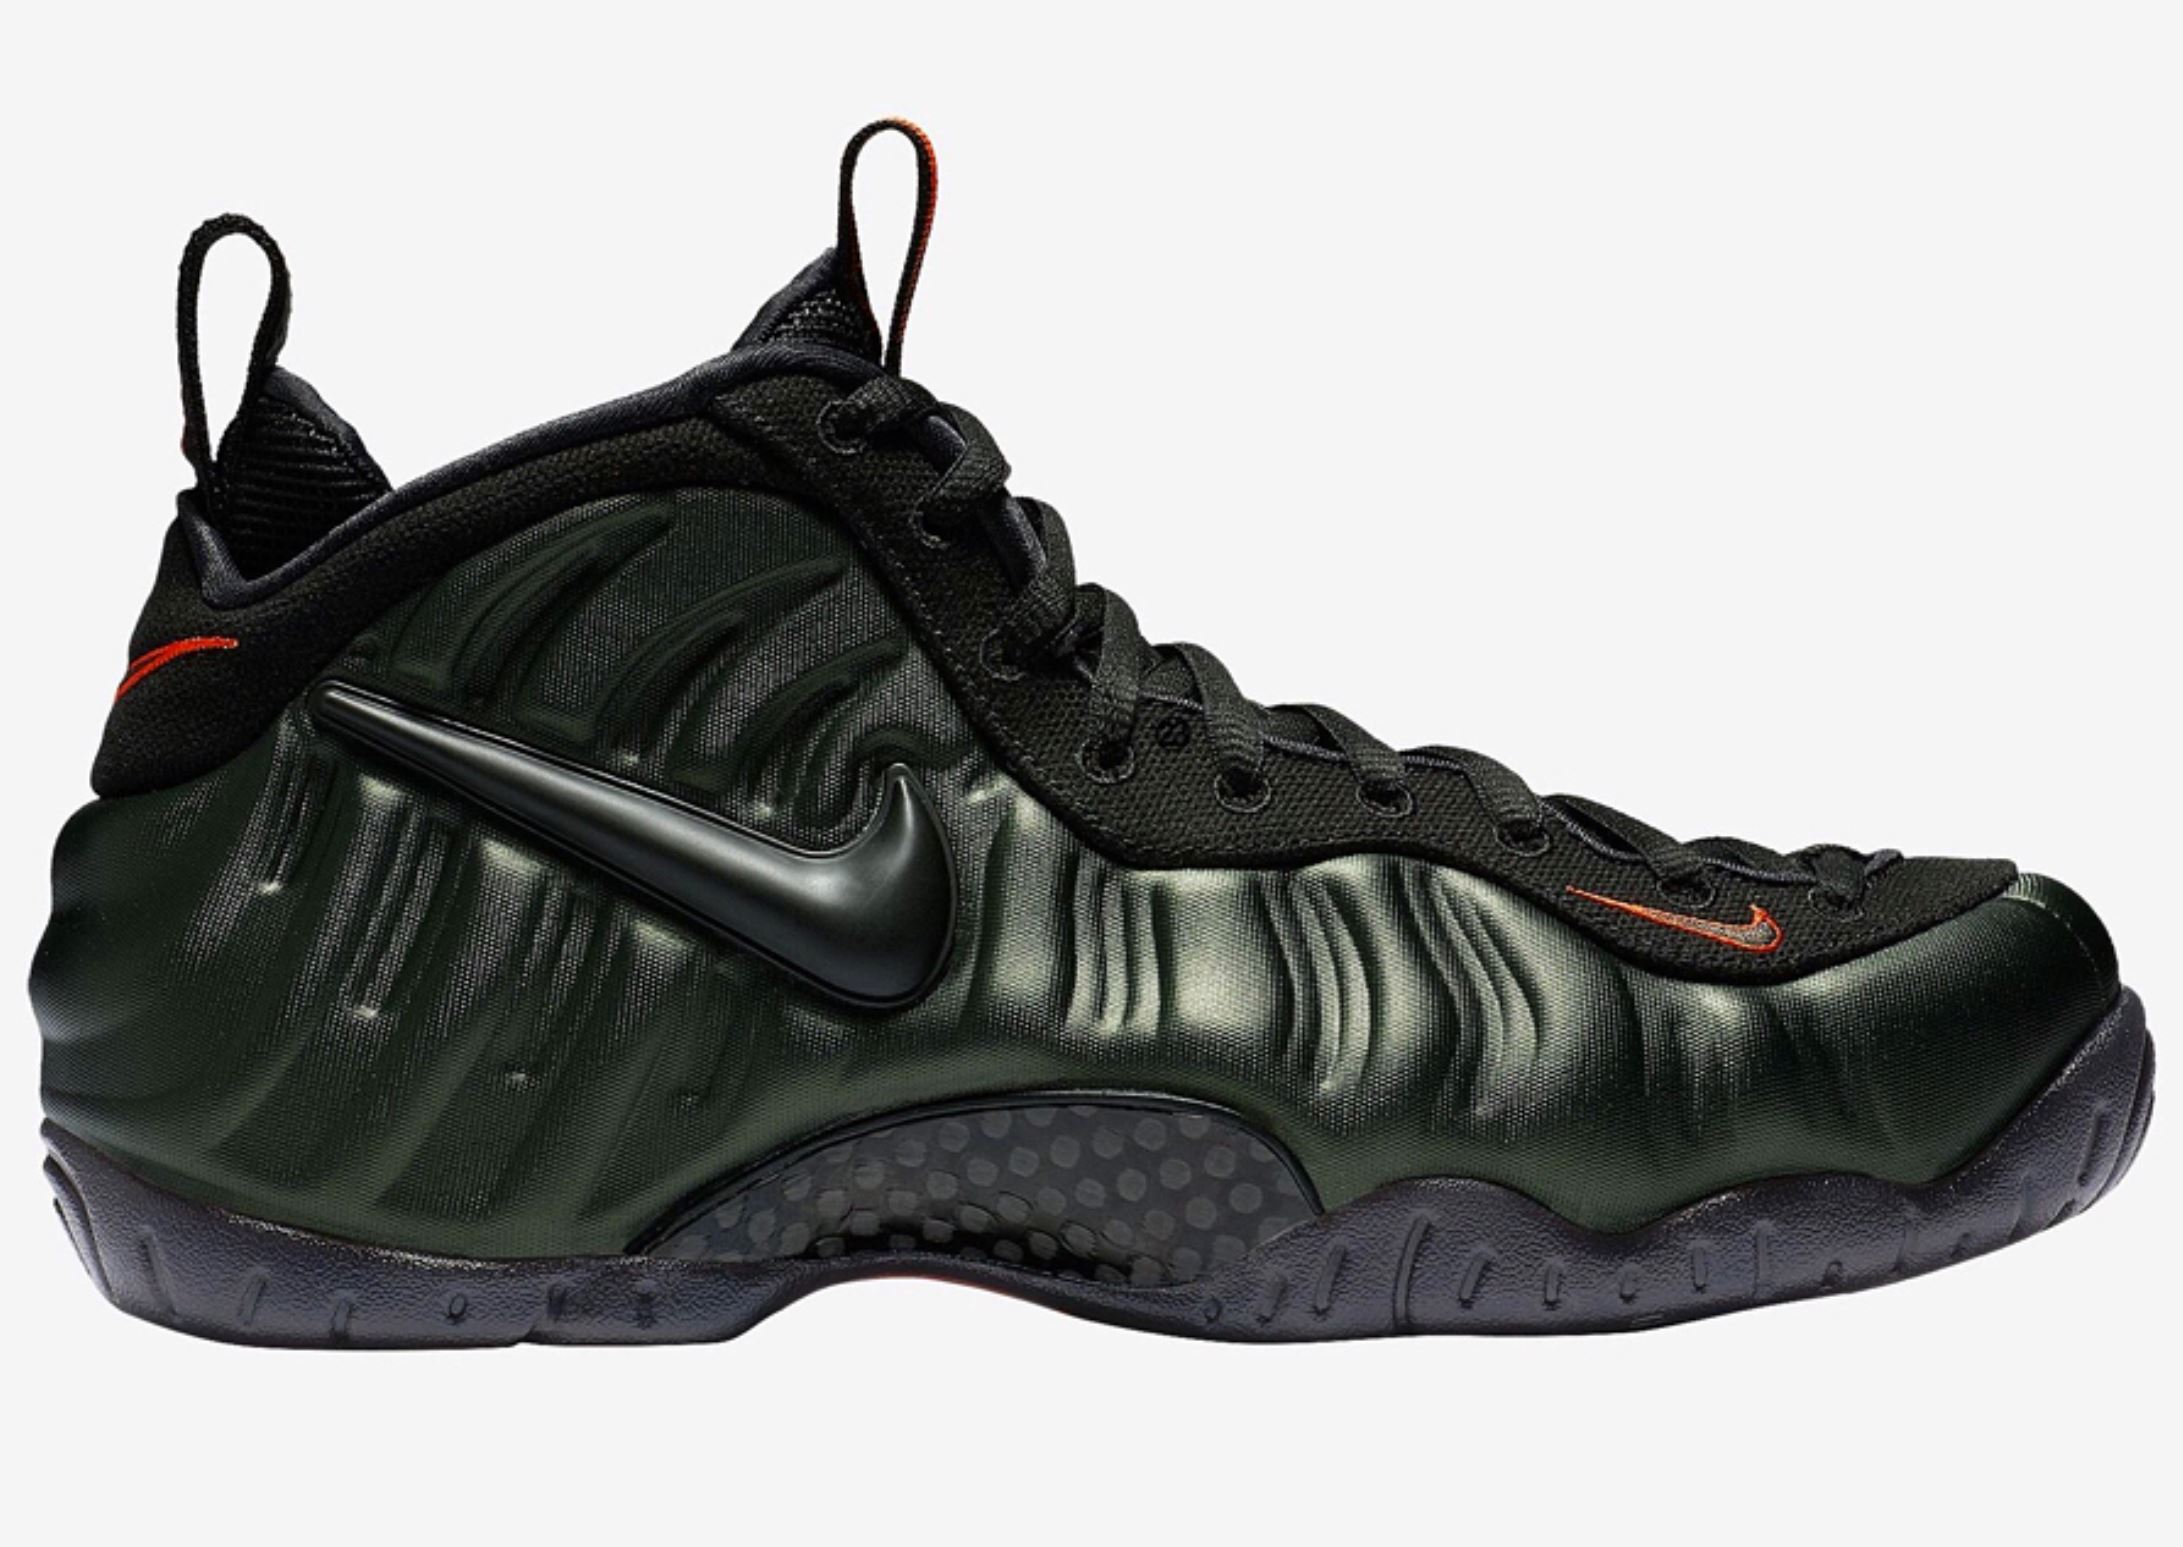 45ae57cdf nike foamposite for women gray black